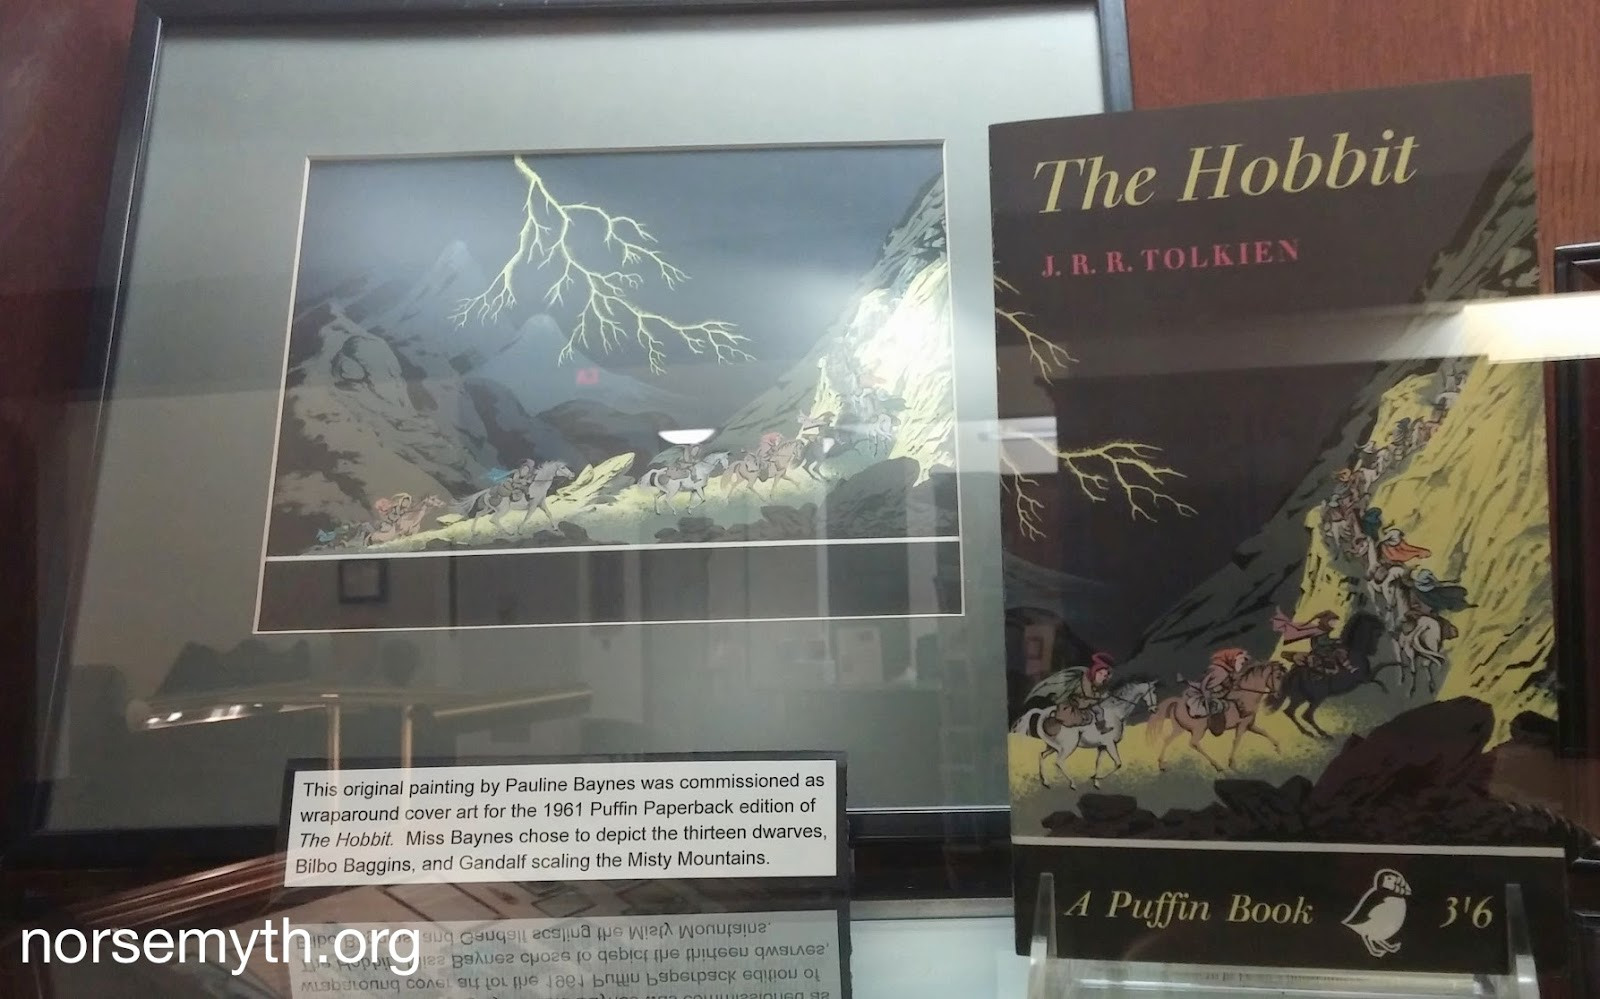 the norse mythology blog org tolkien archives at  original cover art by pauline baynes for the hobbit